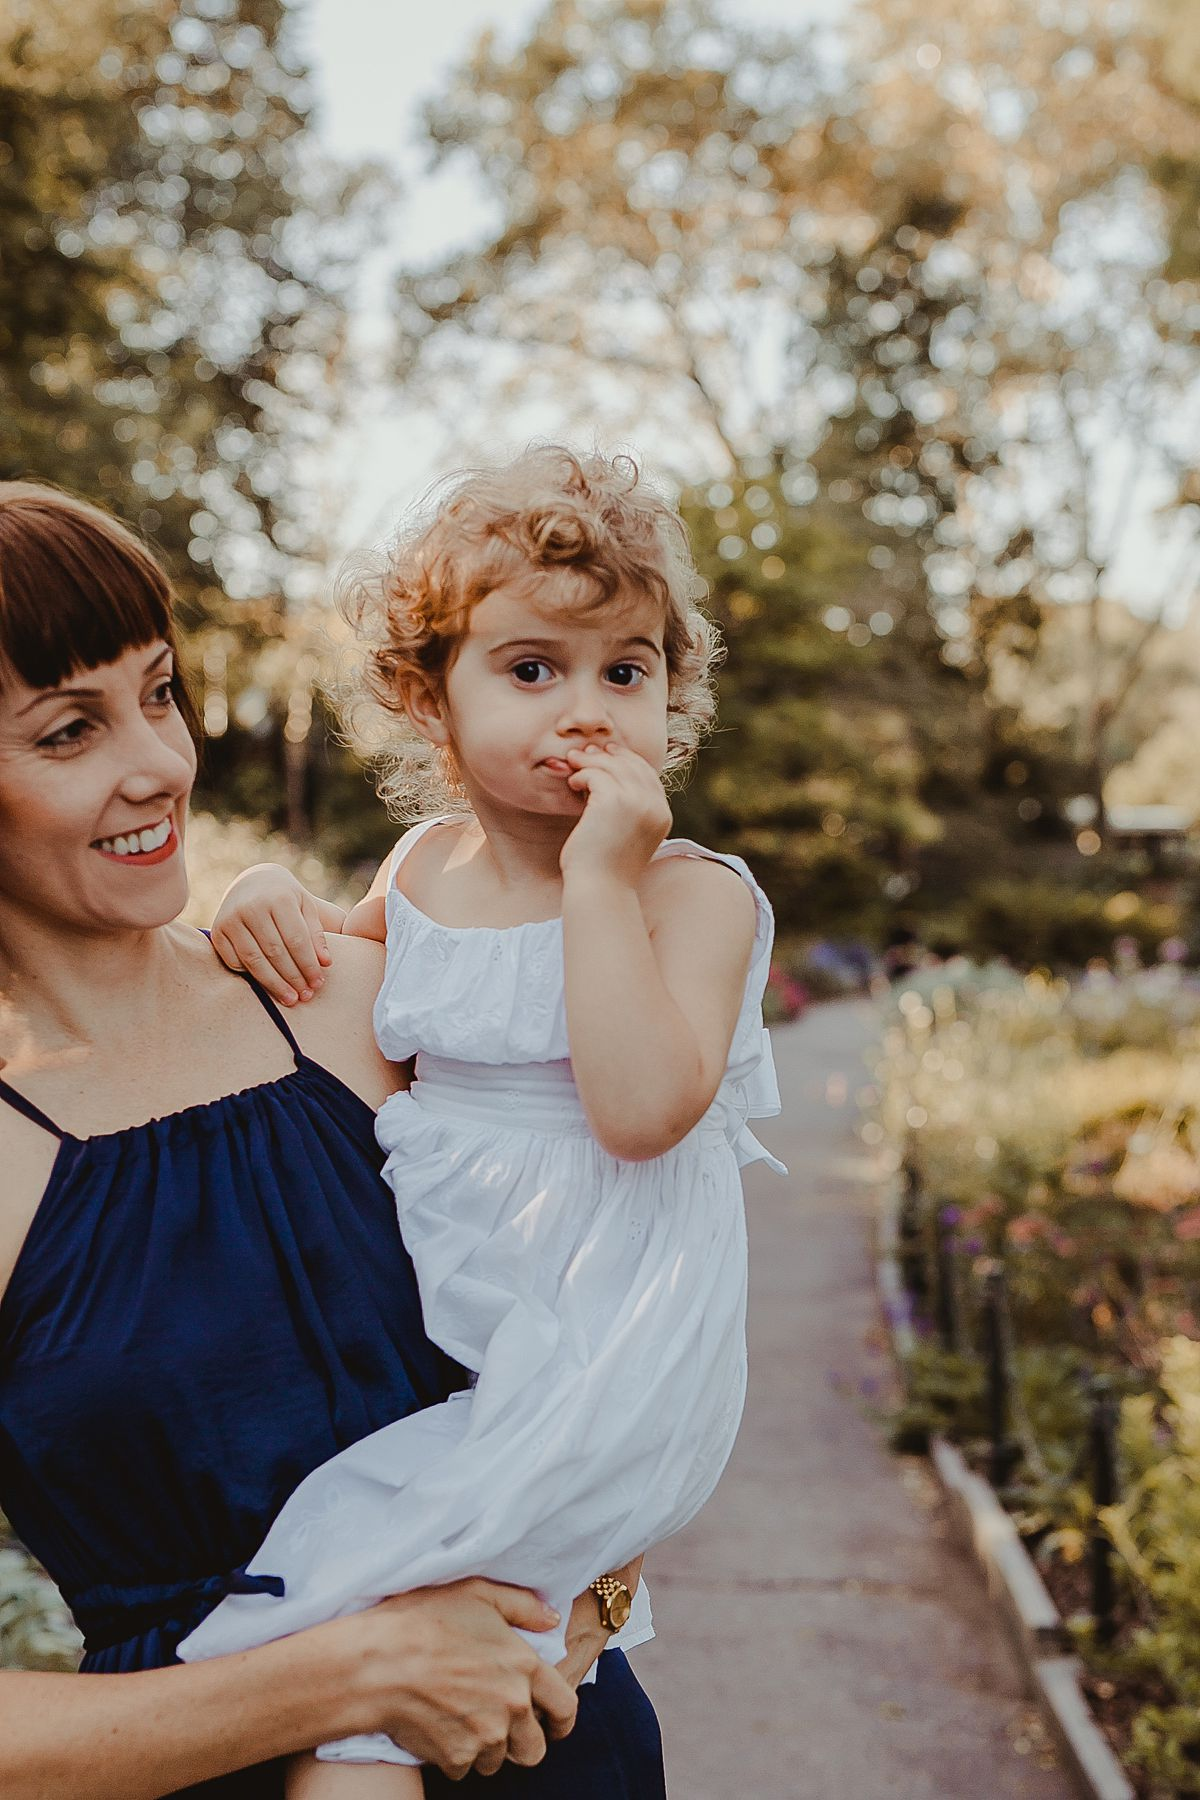 mom holds daughter amongst bright and colorful park flowers in park during documentary family session. image by nyc family and newborn photographer krystil mcdowall